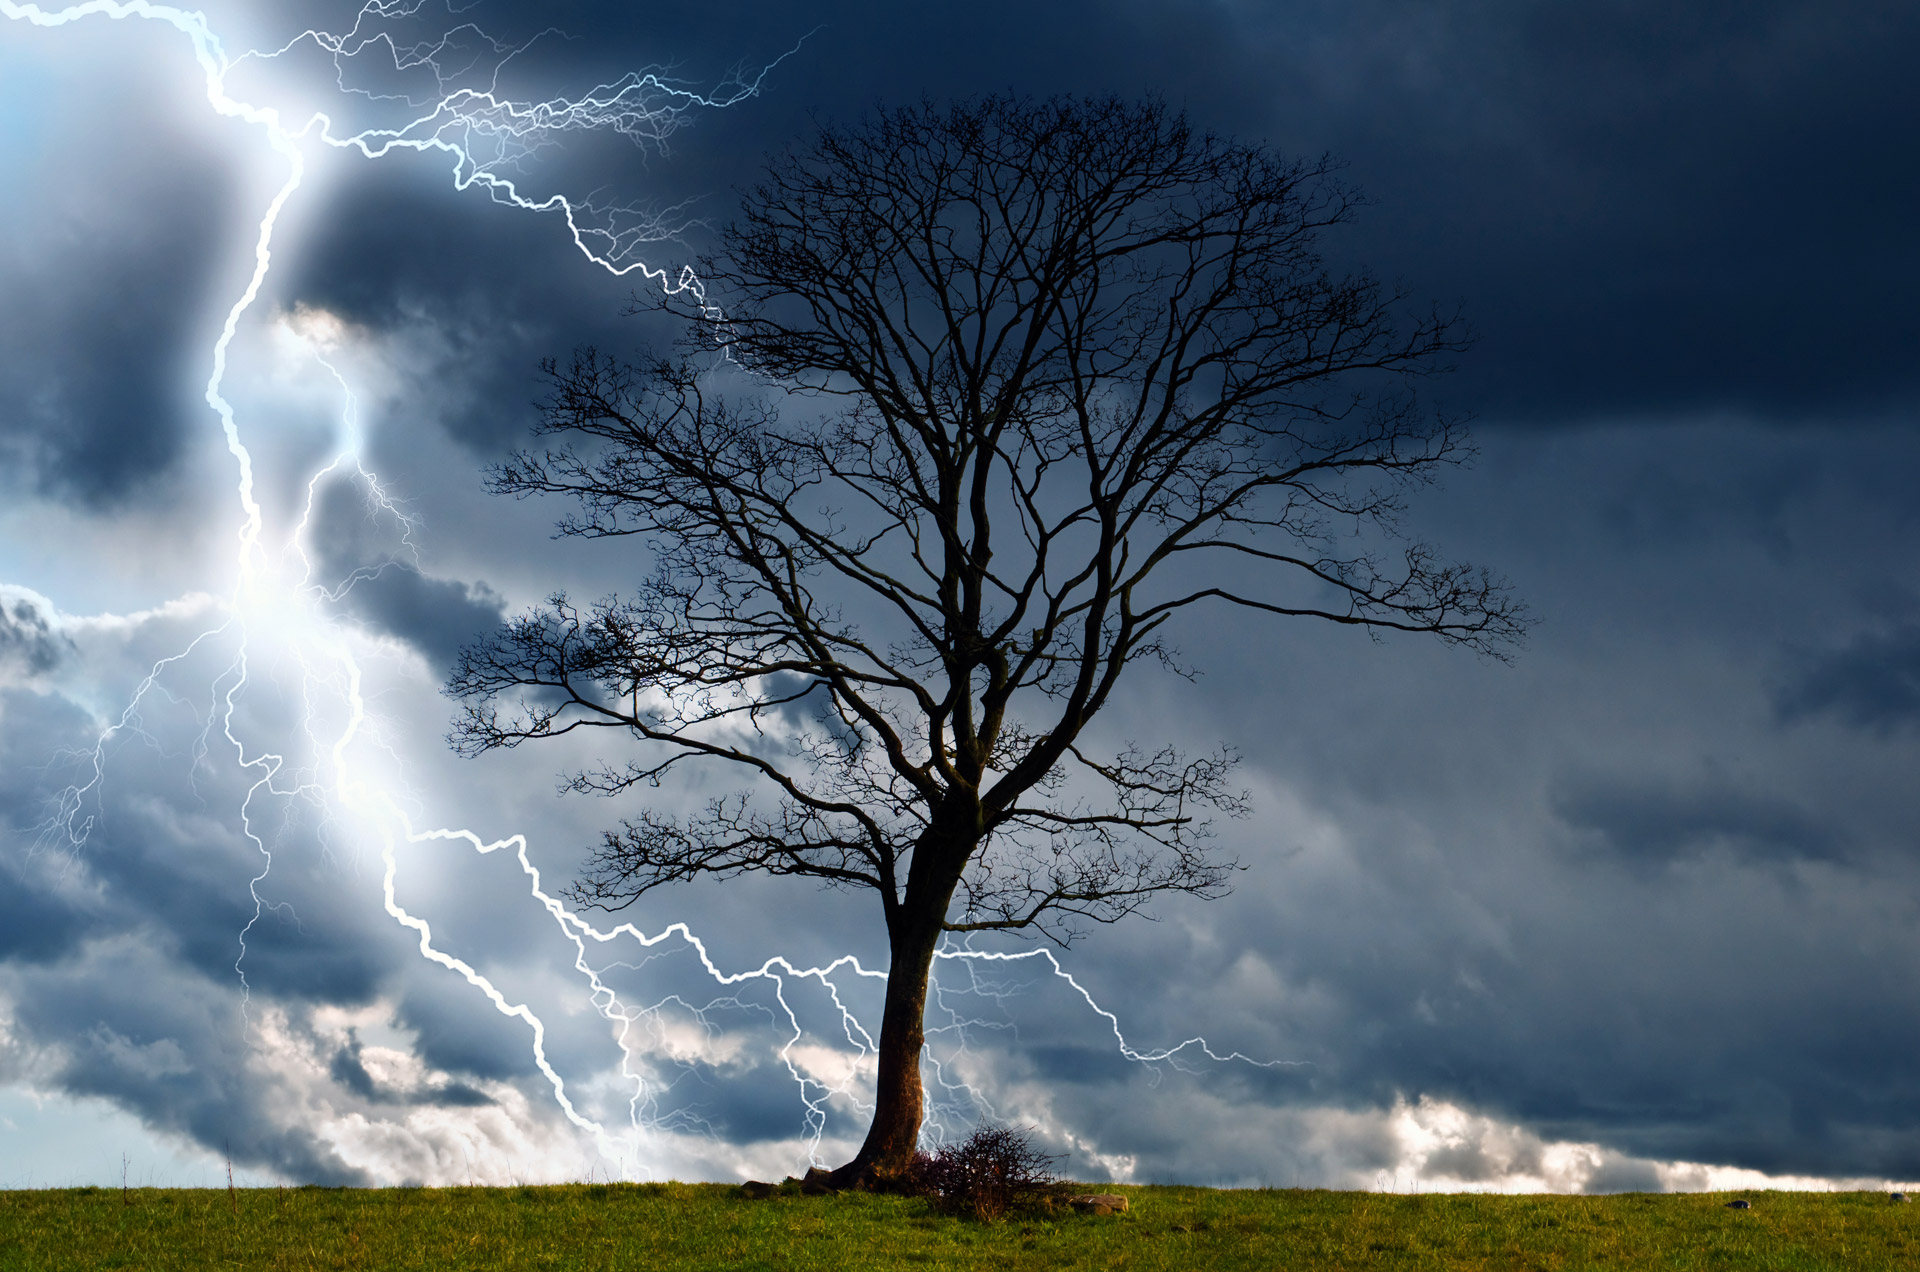 tree and storm free images at clker com vector clip art online